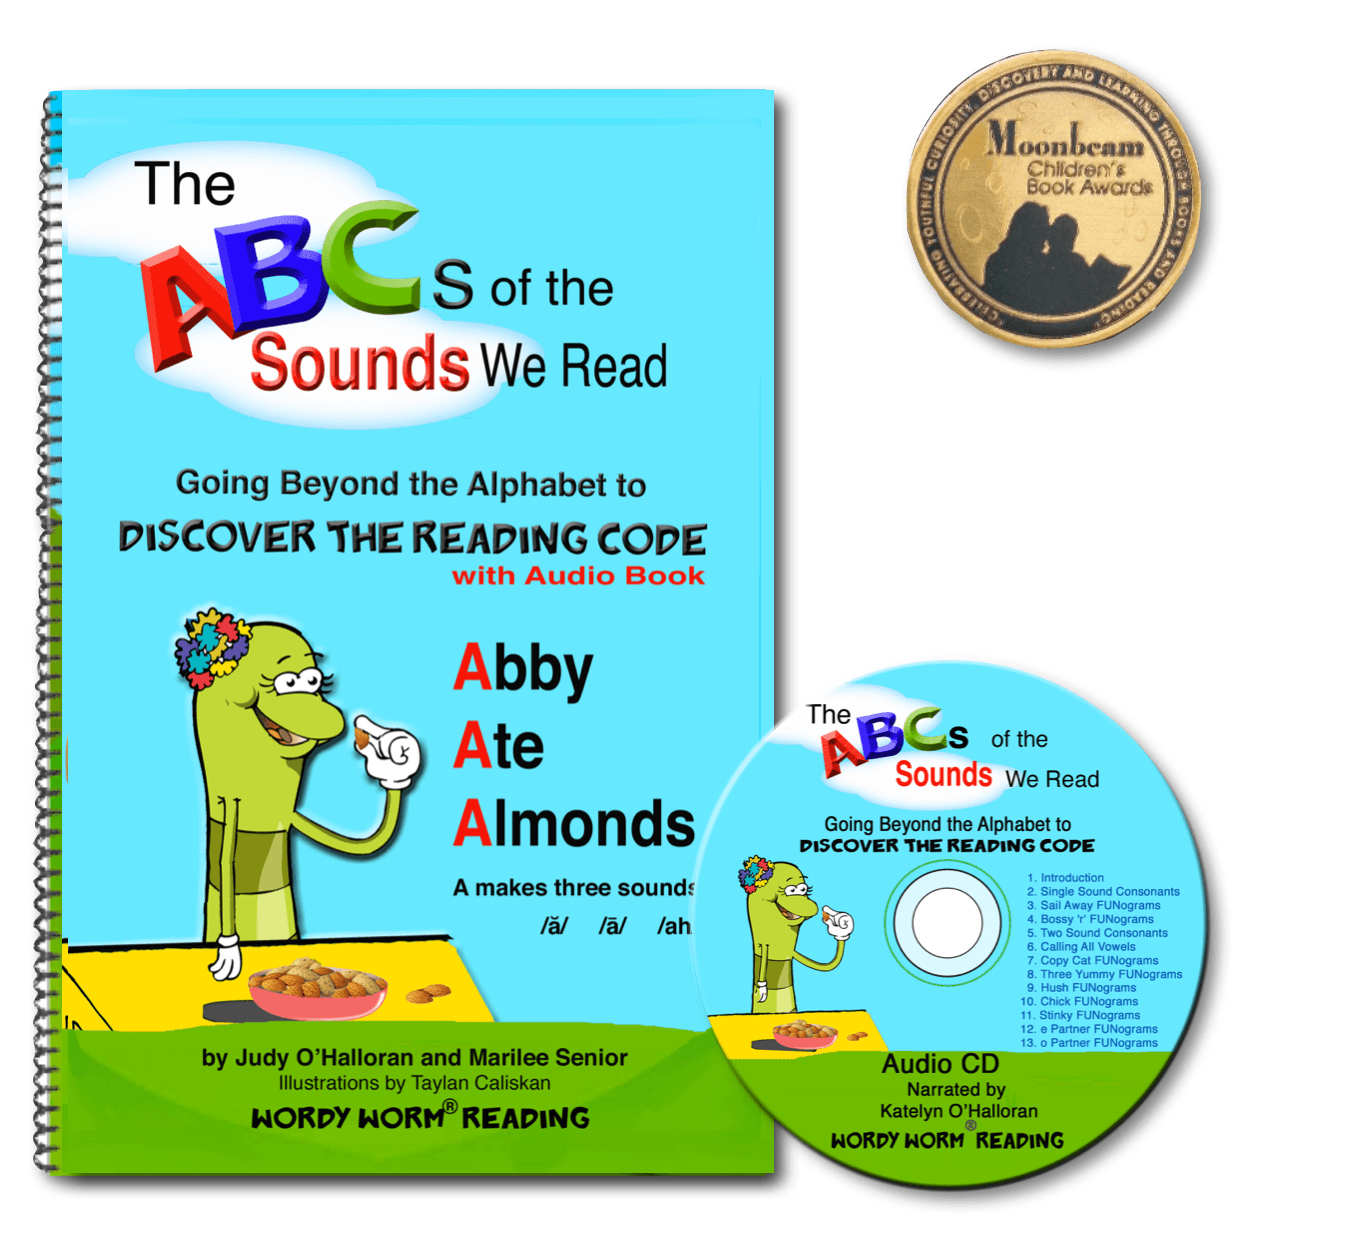 ABCs of the Sounds We Read - Going Beyond The Alphabet to Discover The Reading Code